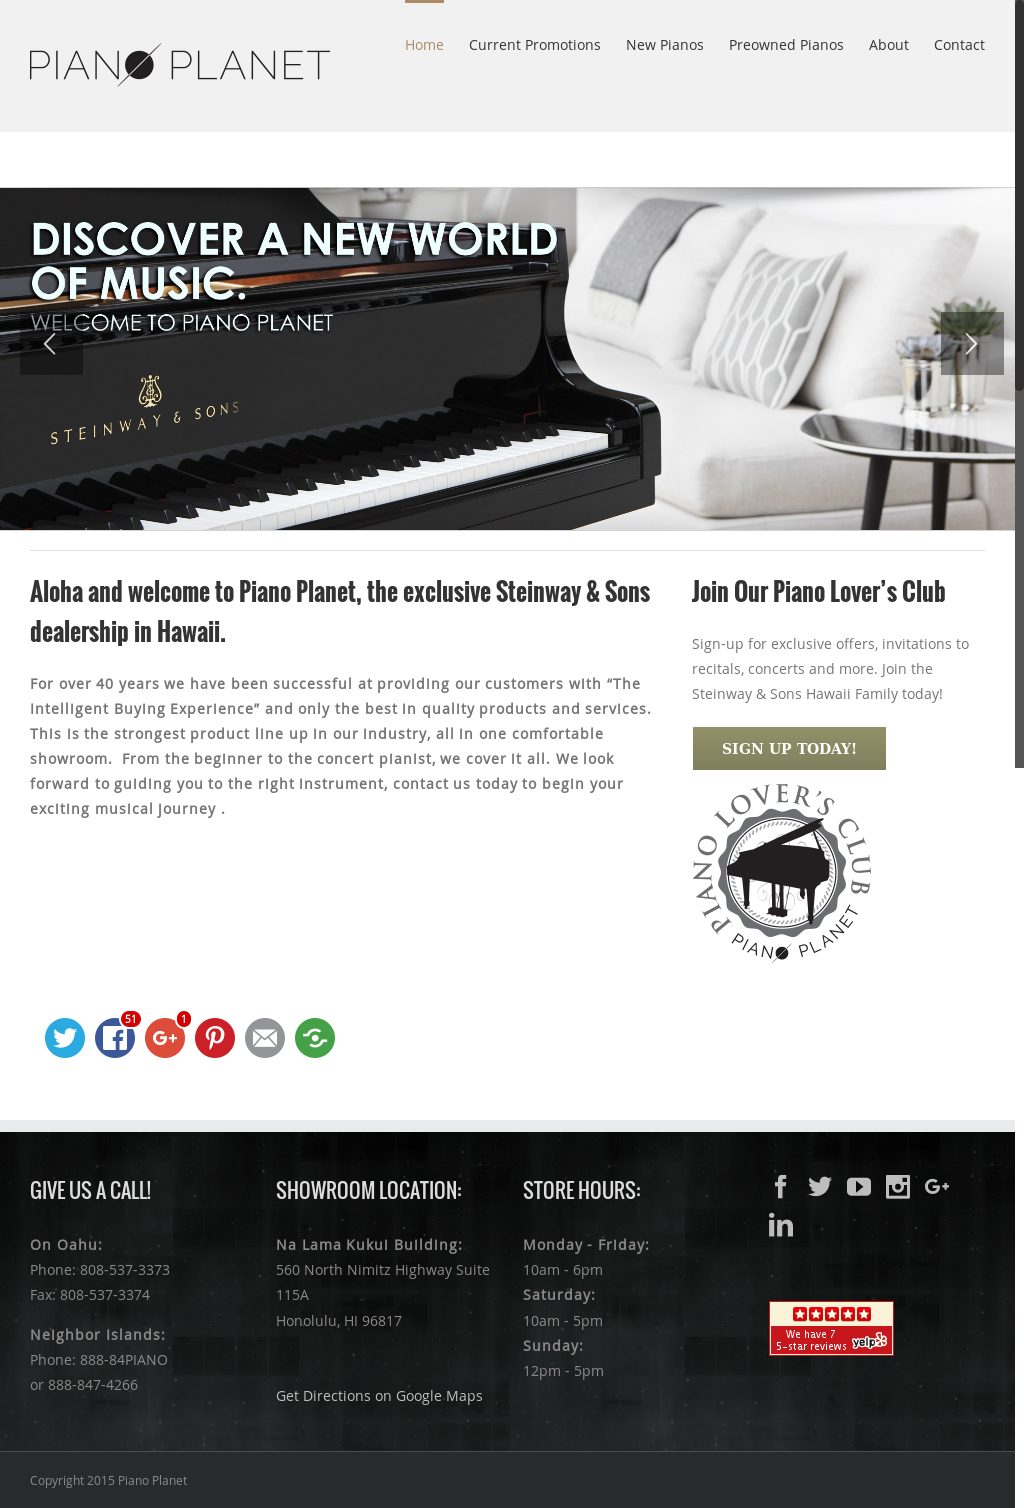 Piano Planet Competitors, Revenue and Employees - Owler